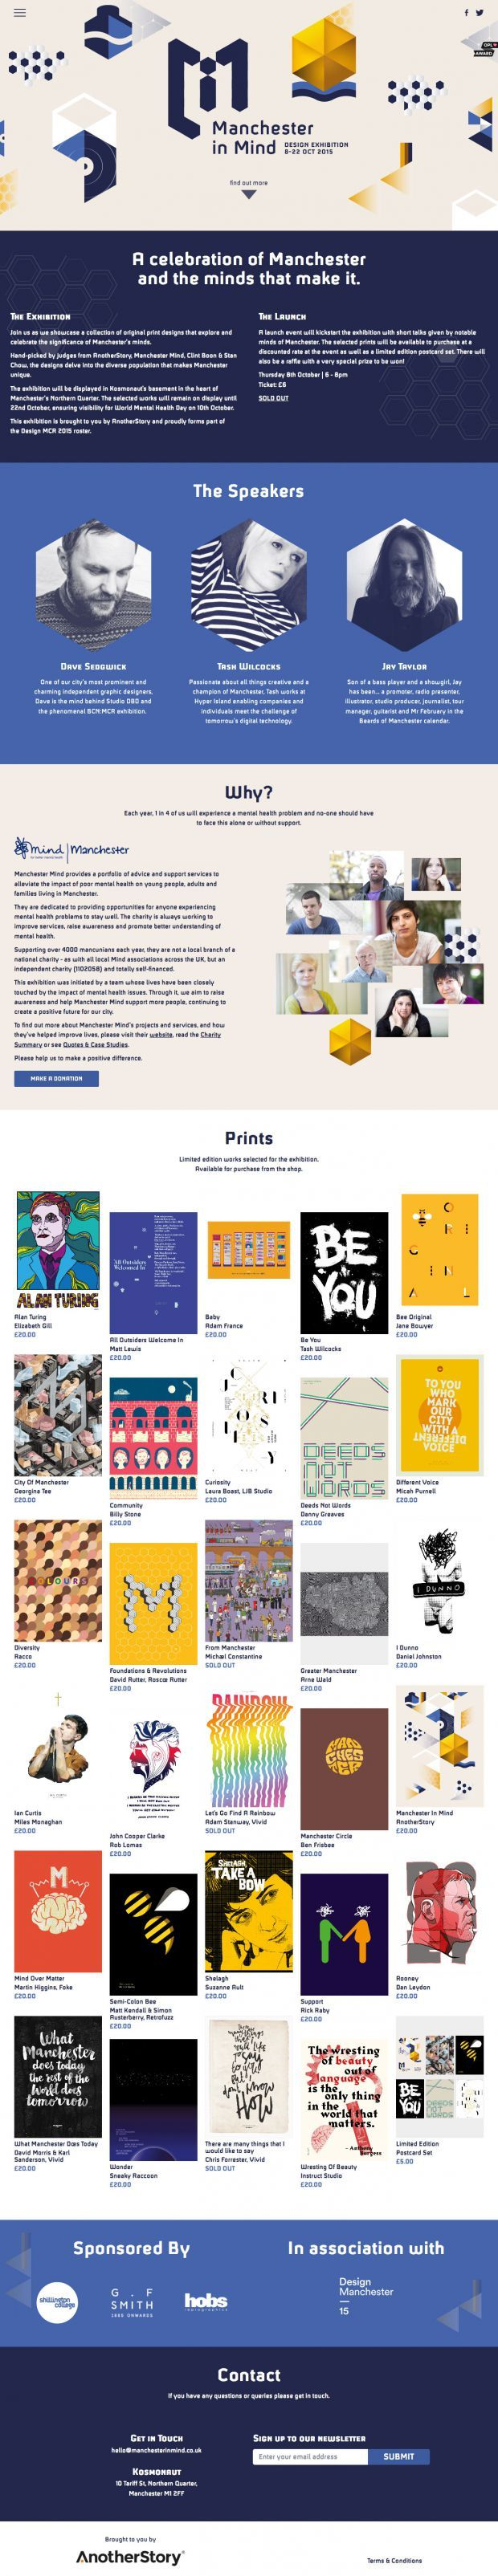 A celebration of Manchester and the minds that make it. DESIGN EXHIBITION 8TH - 15TH OCT 2015 - Best Webdesign inspiration on www.niceoneilike.com #Agency, #html5, #css3, #Webdesign, #Brand, #Inspiration, #Scrolling #Site, #Digital, #Design, #Website